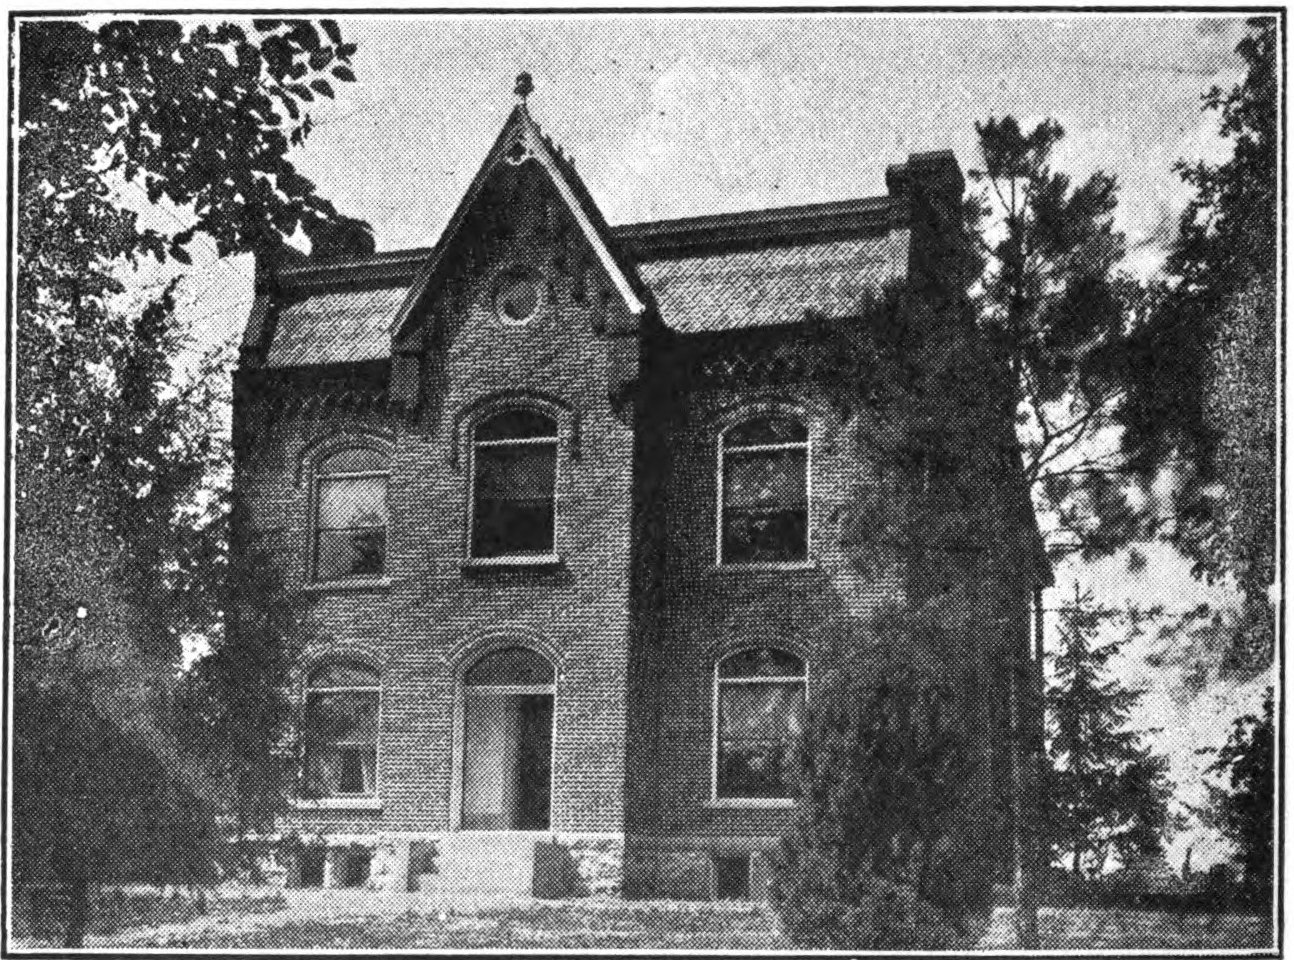 """Rectory of St. Michael parish, Fredericktown, Mo., 1901, where John Rothensteiner built a library that required a boxcar to move. From John Rothensteiner, """"Chronicles of an Old Missouri Parish,"""" p. 54."""